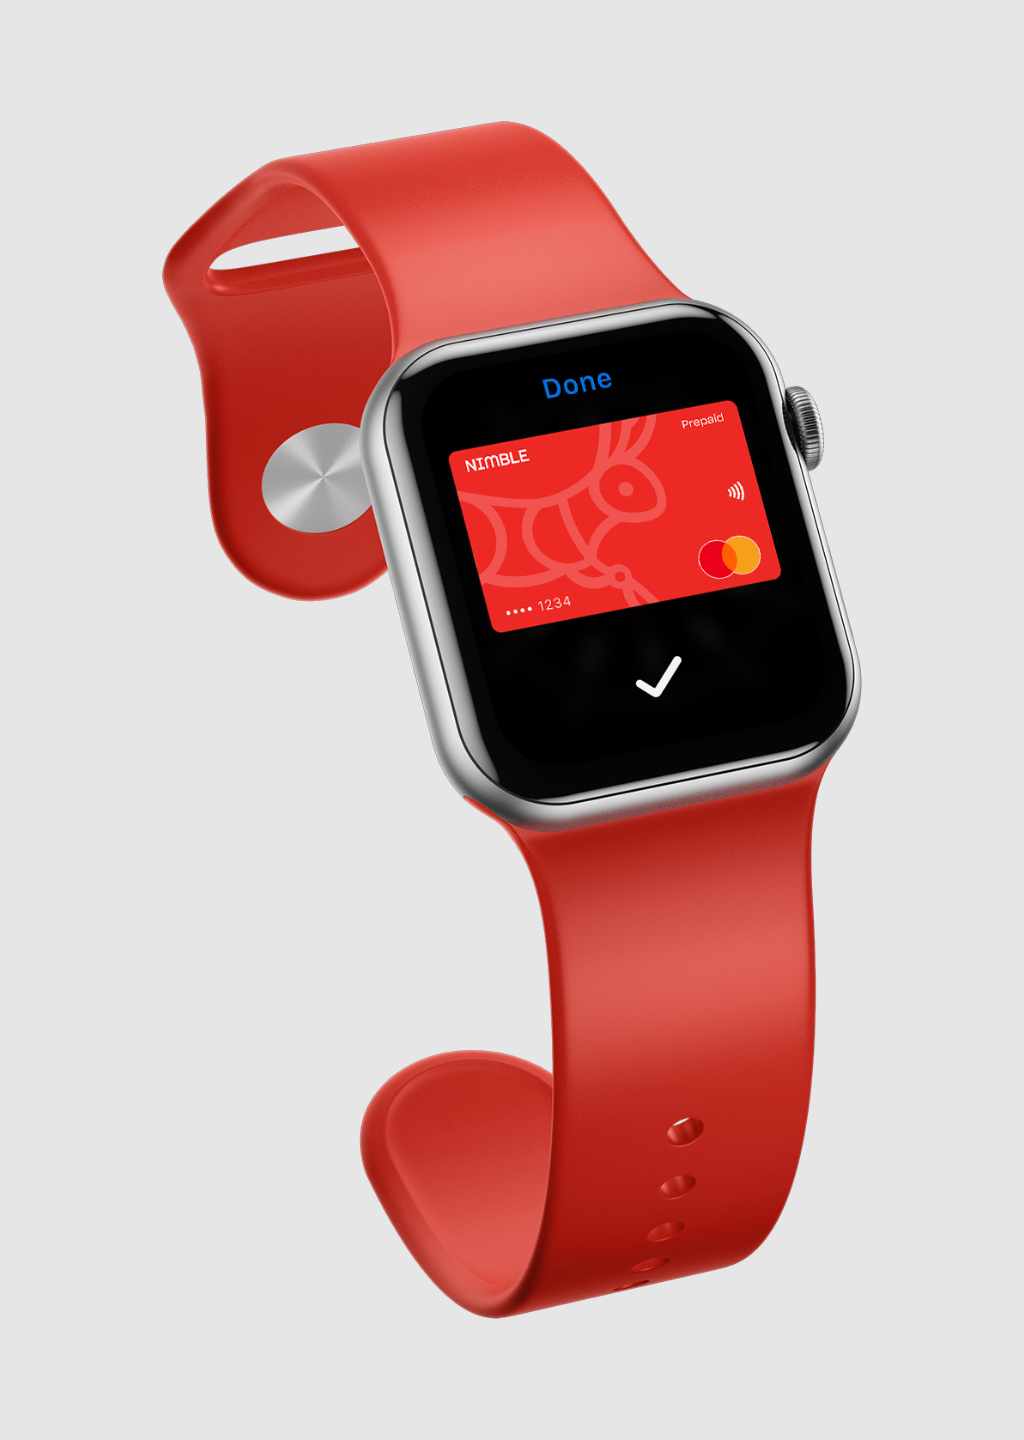 nimble-anytime-apple-pay-watch